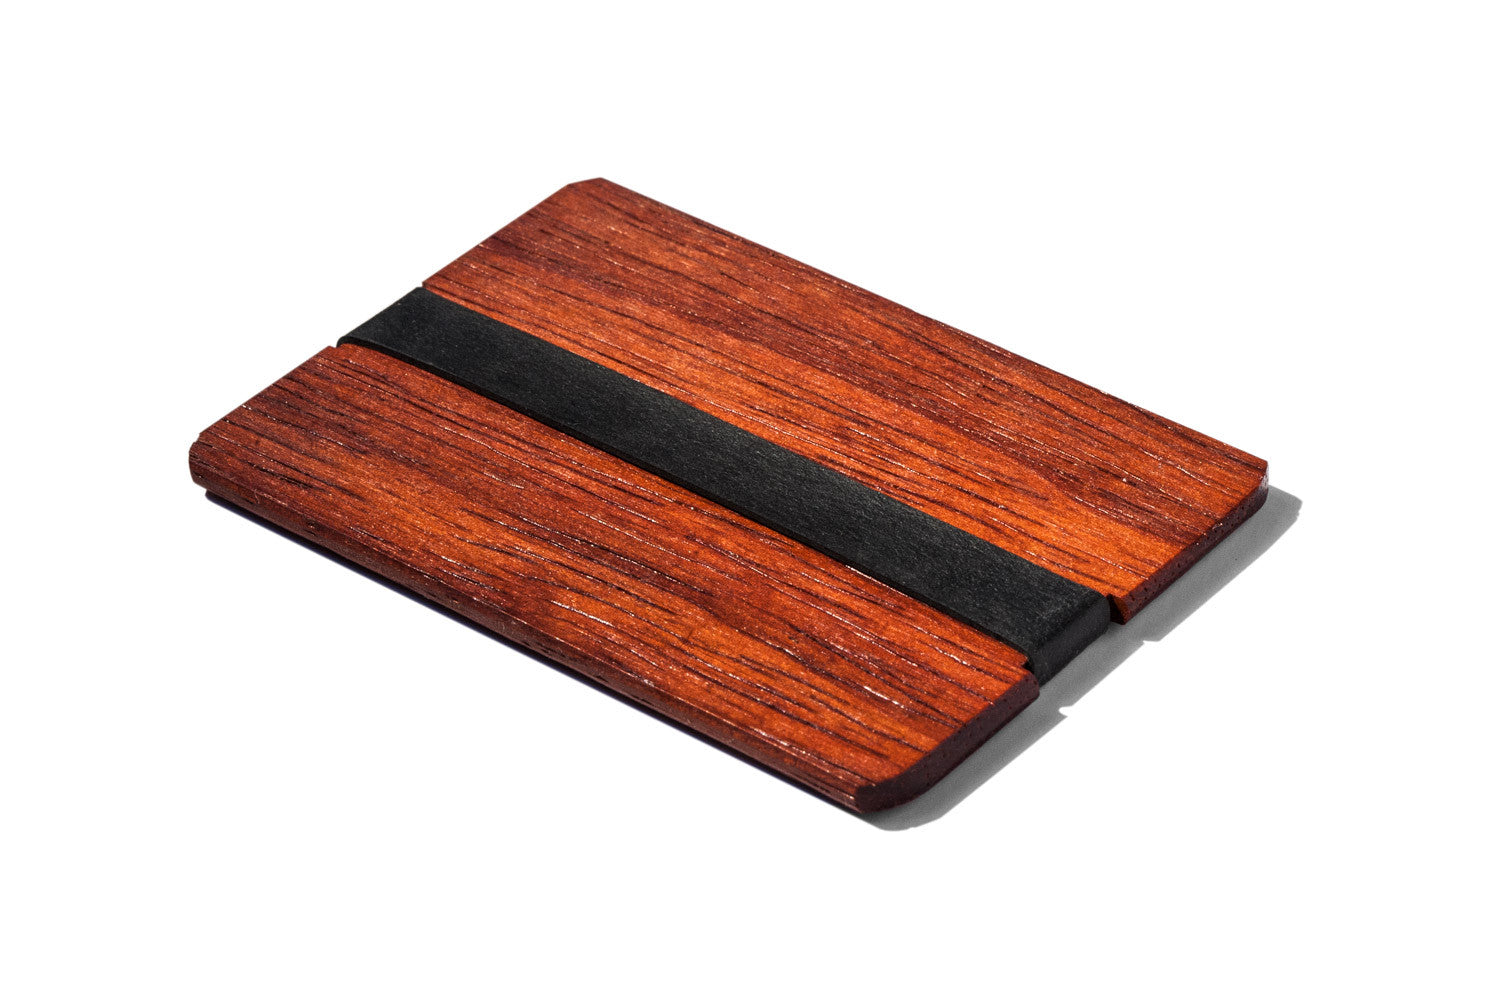 Exotic wood wallets